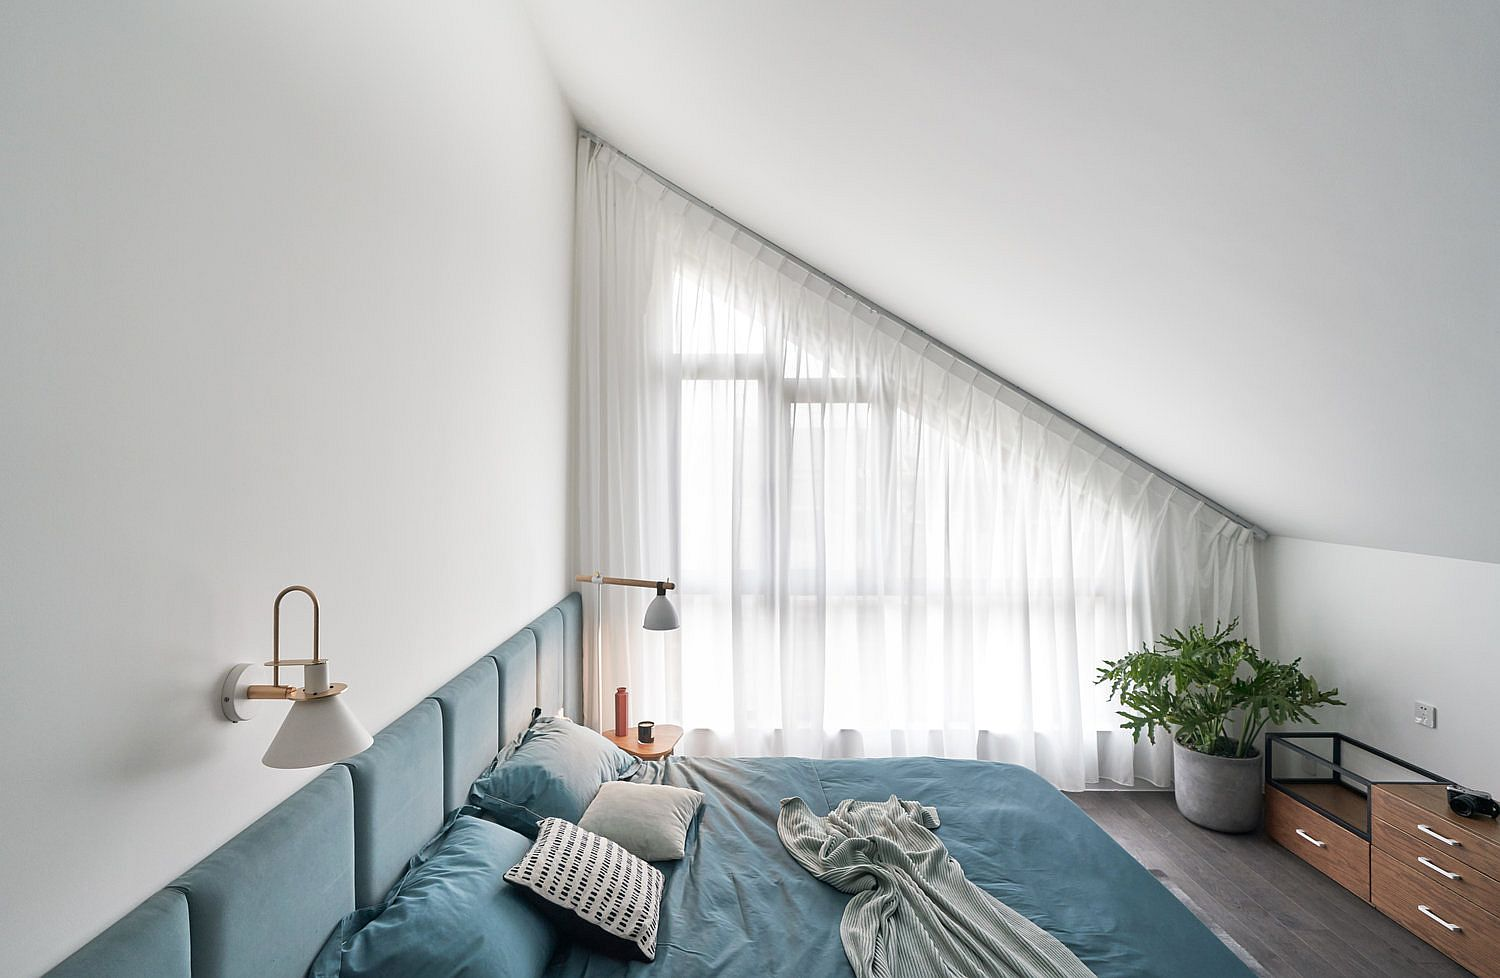 Blues-and-greens-add-brightness-to-the-bedroom-in-white-with-slanted-ceiling